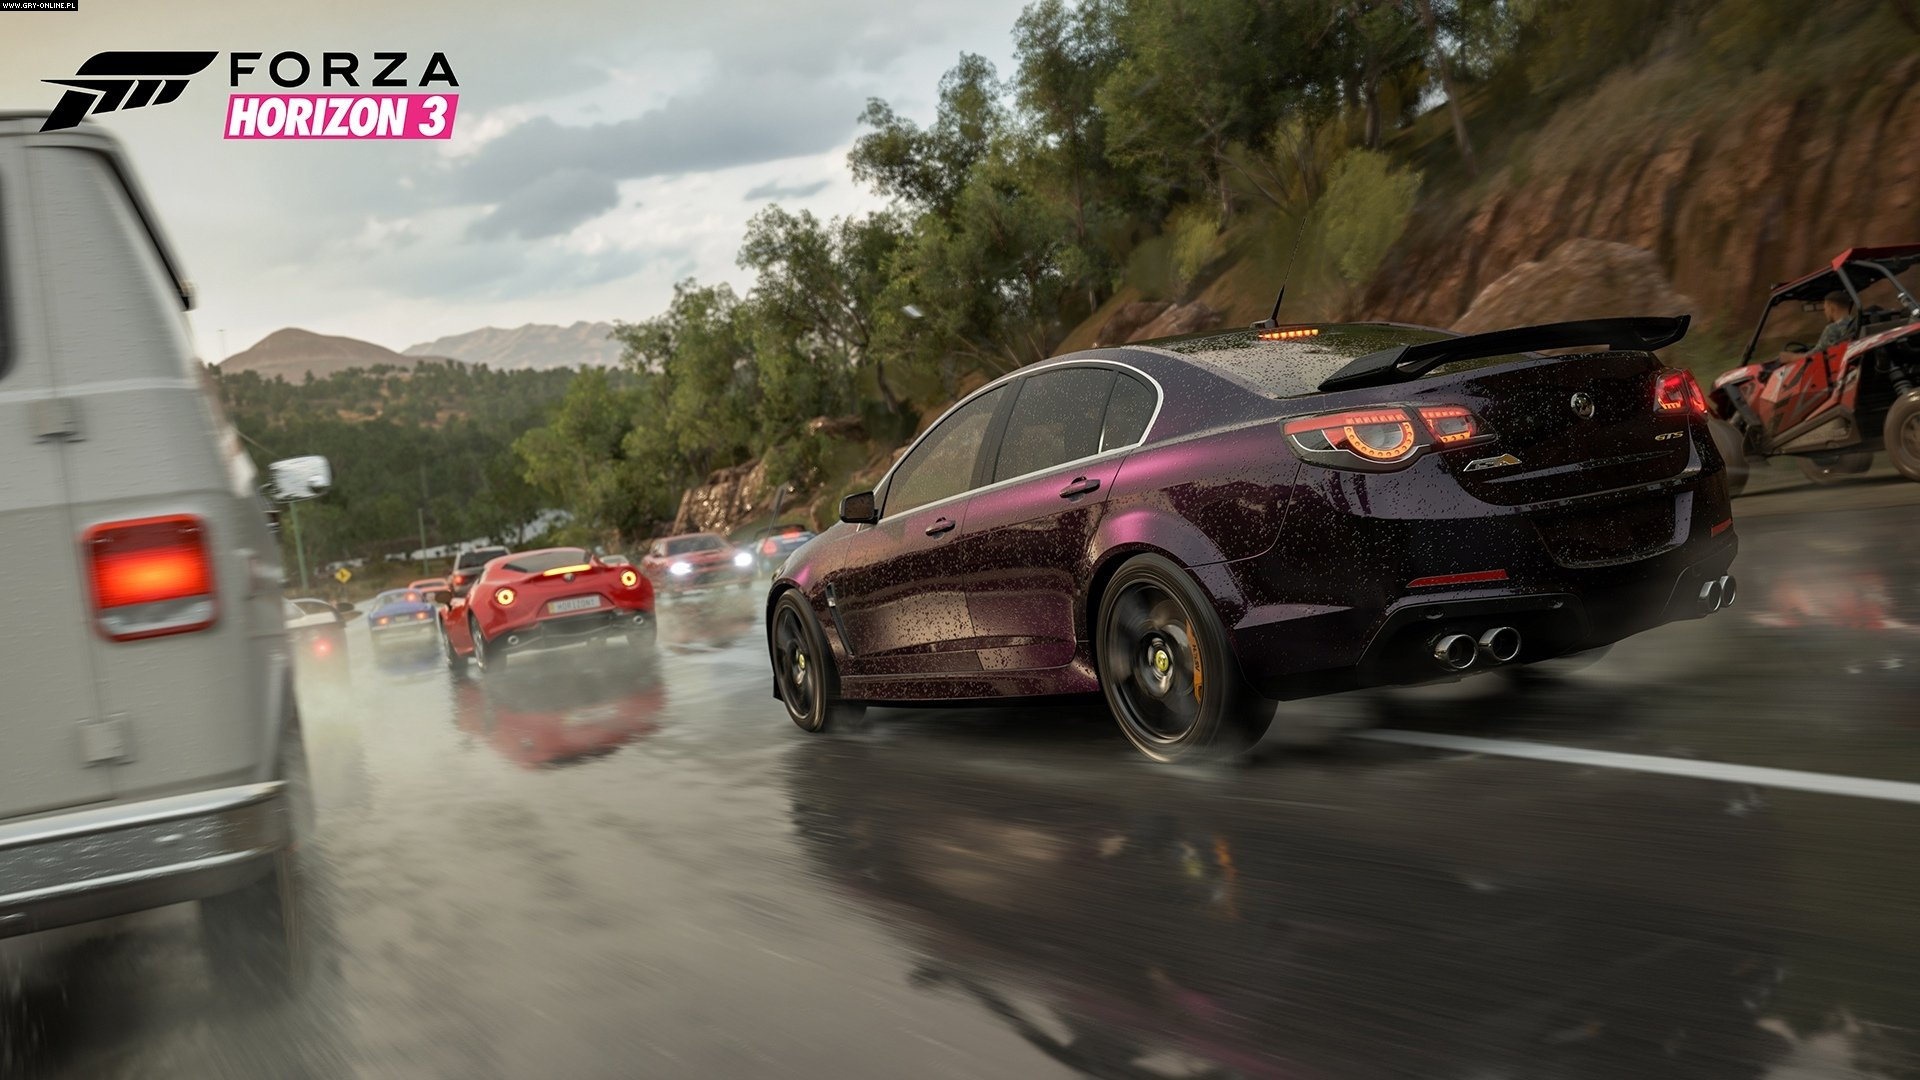 Forza Horizon 3 PC, XONE Gry Screen 64/101, Playground Games, Xbox Game Studios / Microsoft Studios